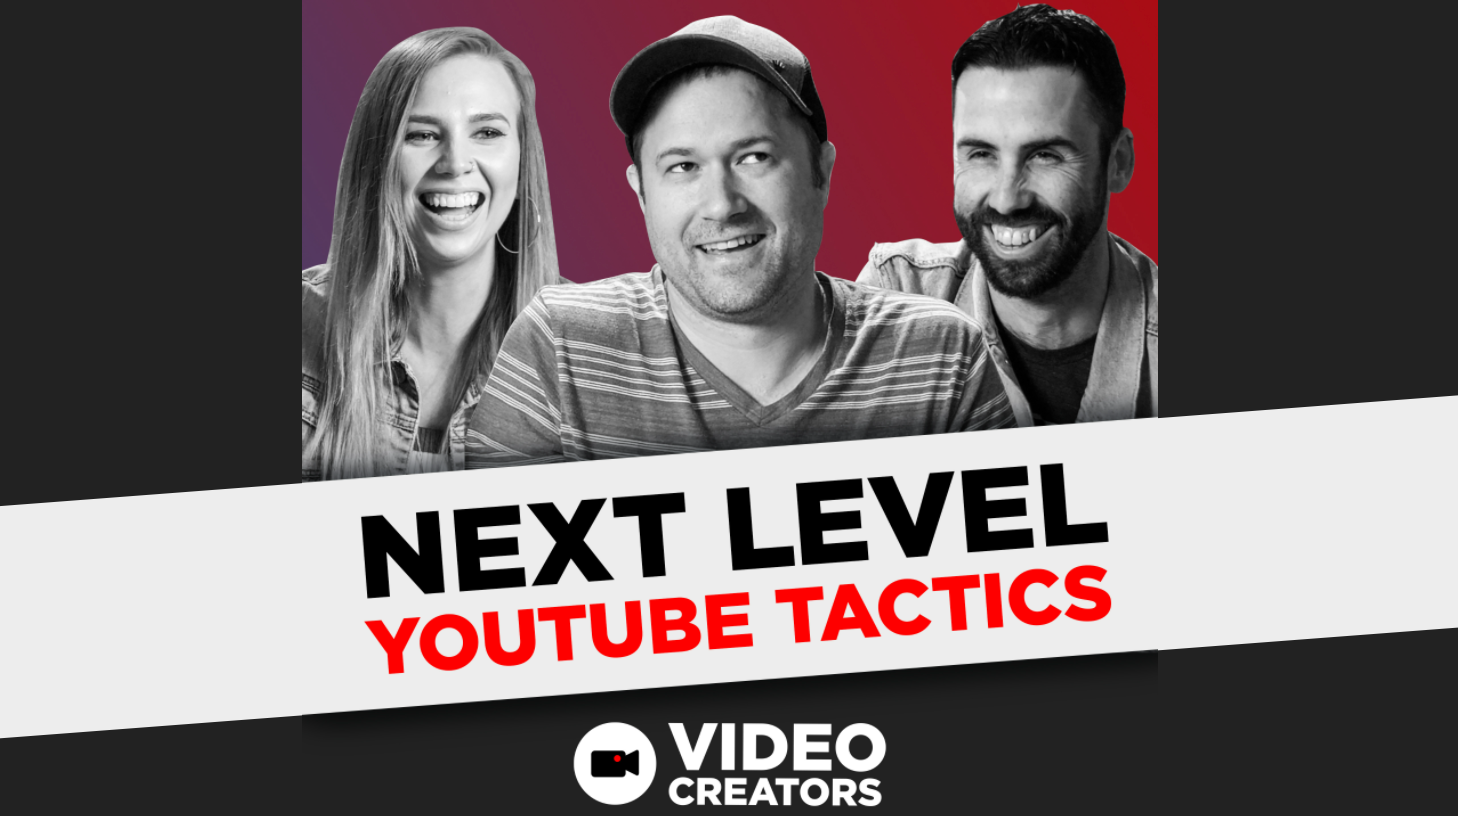 The cover art for the Video Creators podcast.